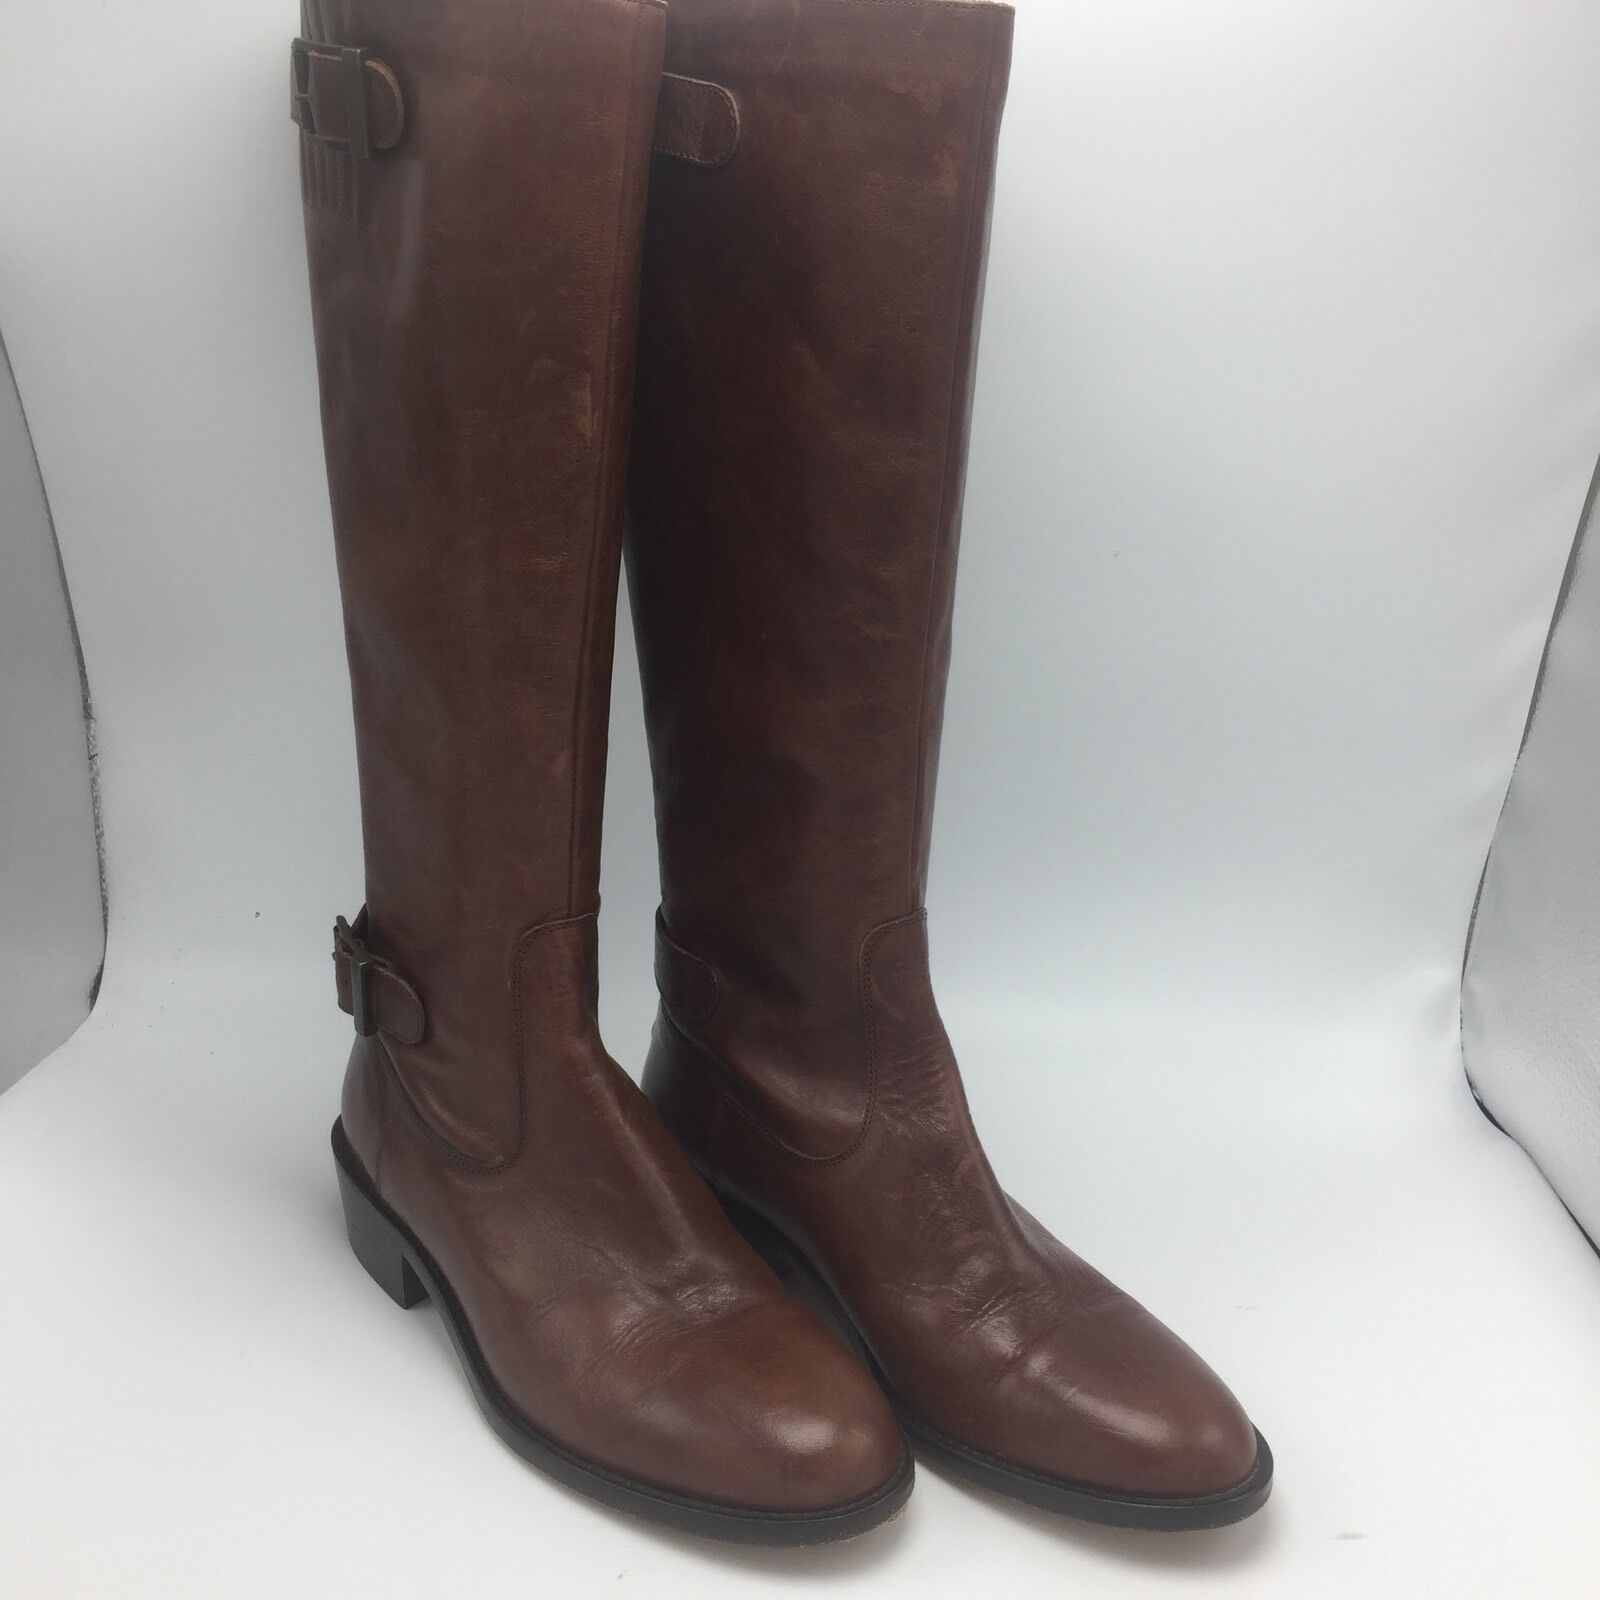 Saks Fifth Ave Leather Tall Boots Size 39 8 1/2 M Brown Low Heel Knee Hi Buckles